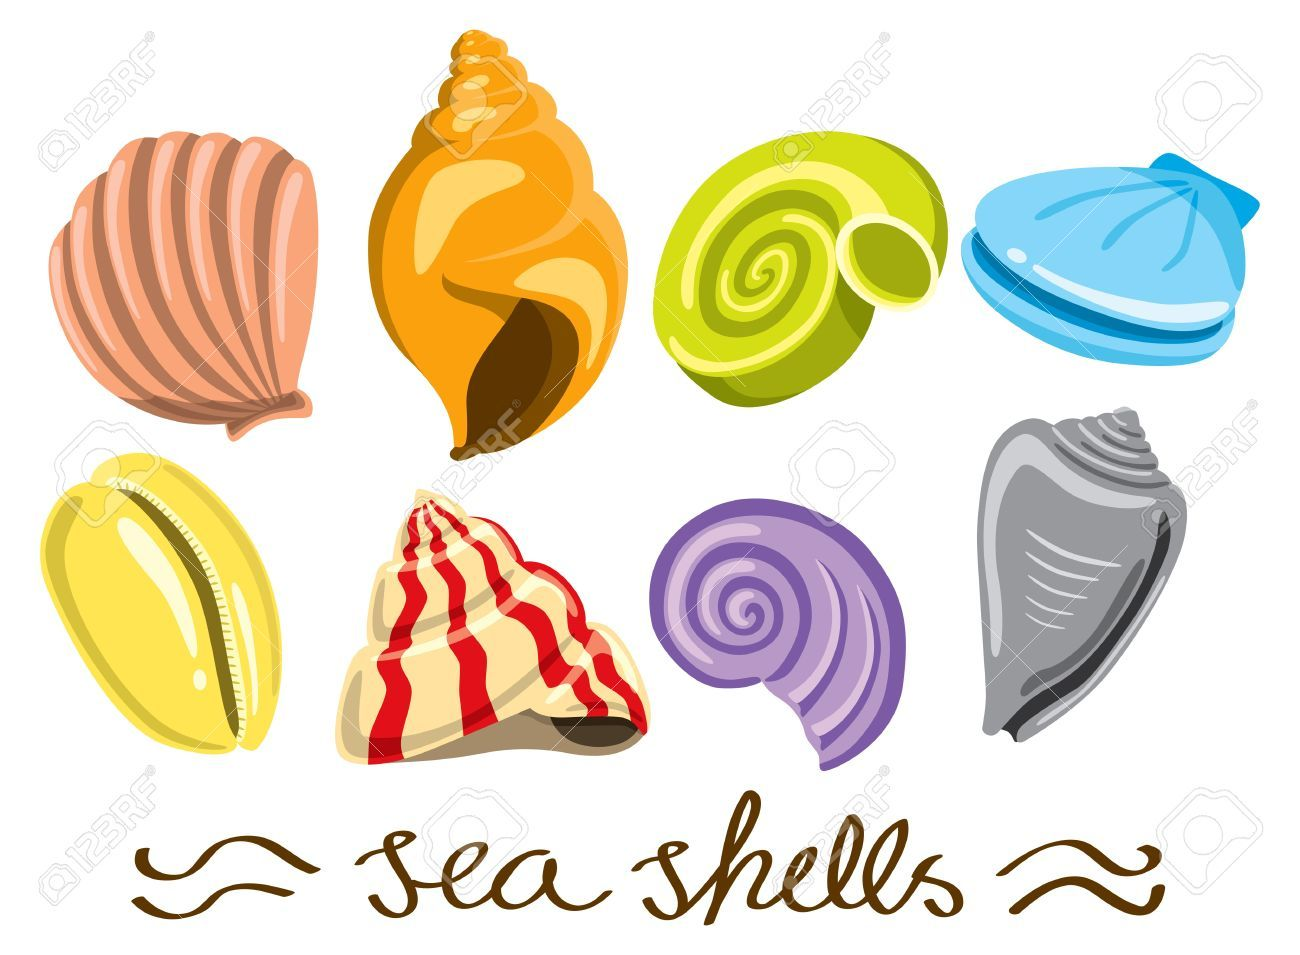 Animated Pictures Of Seashells scallop shell stock illustrations, cliparts and royalty free